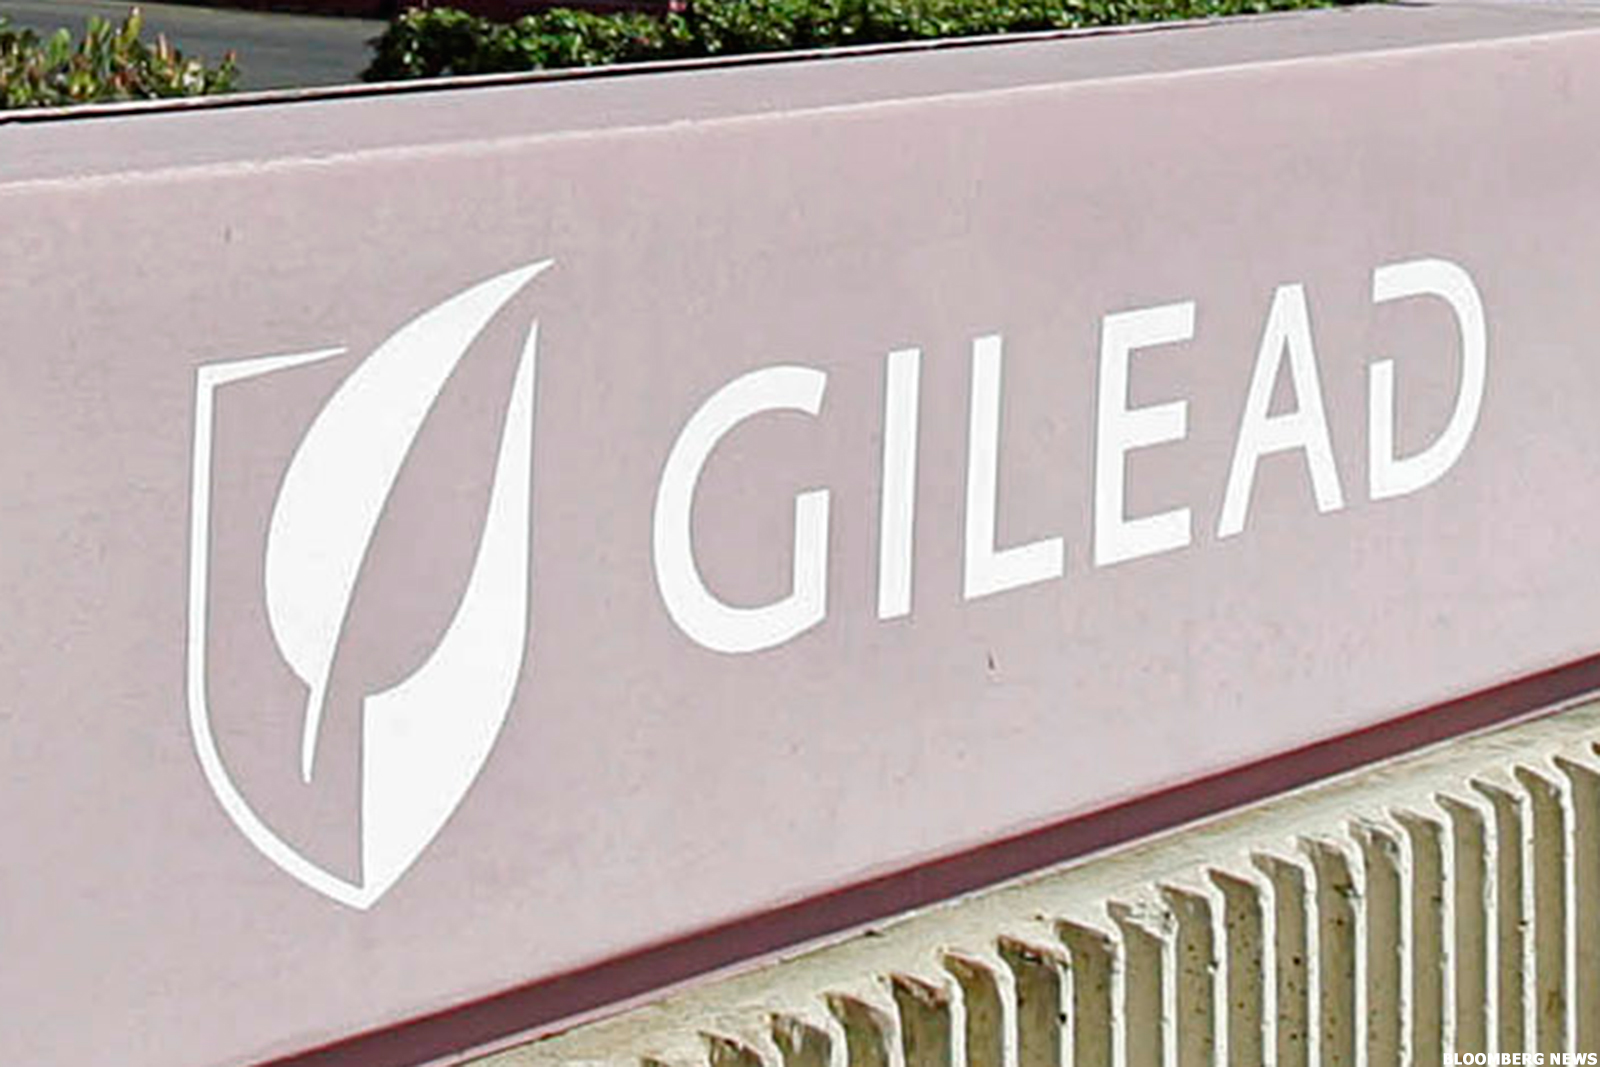 Gilead (gild) Shares Spike After Exec Board Appointment